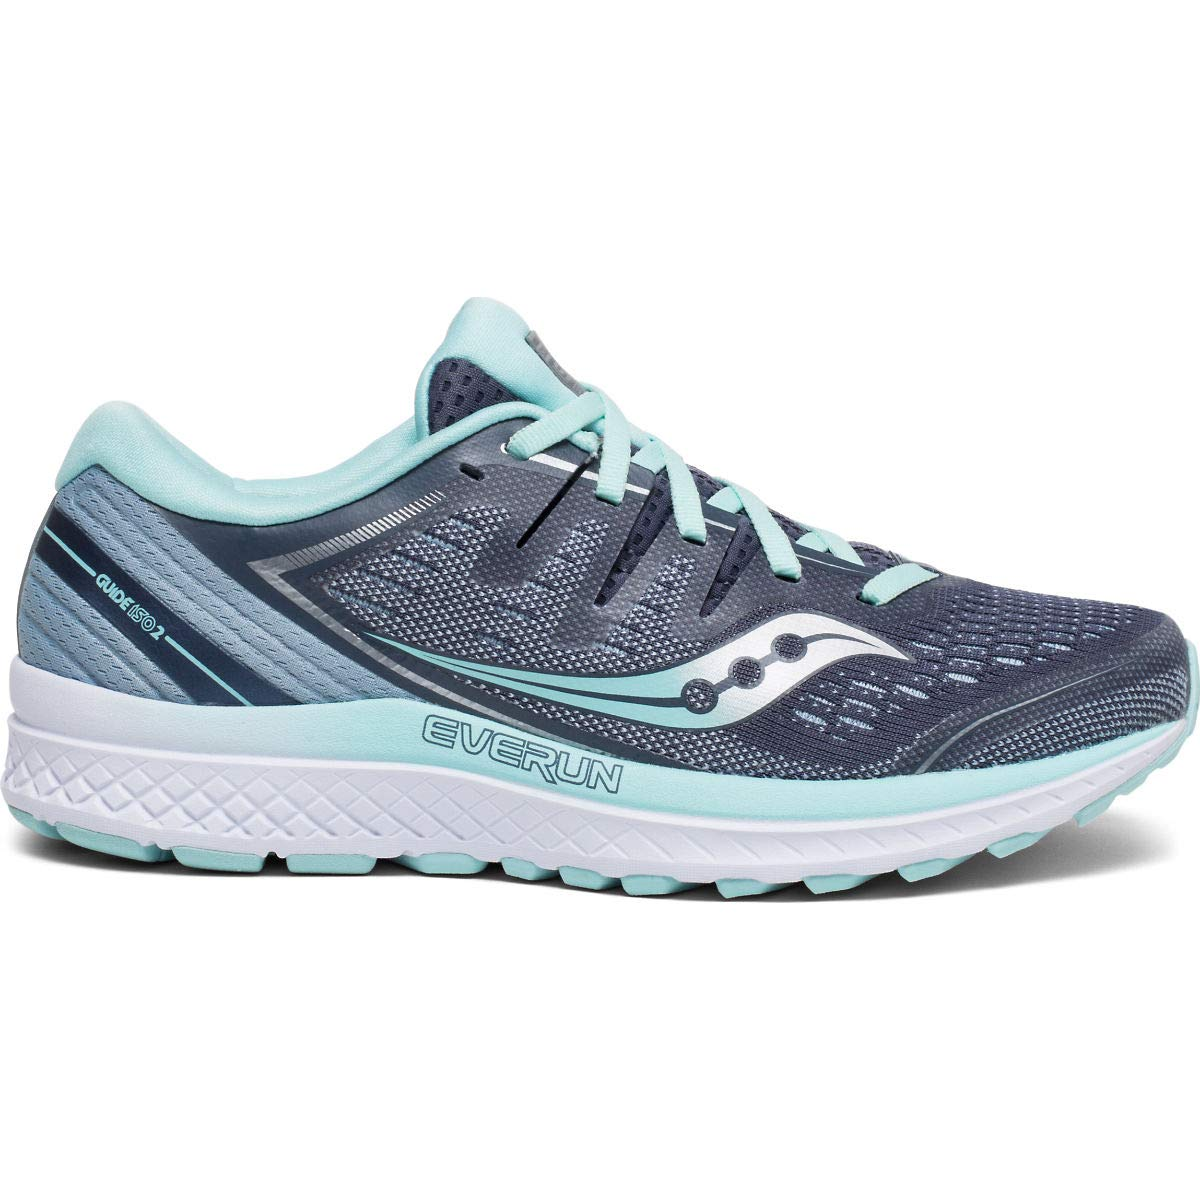 Details about Saucony Guide Iso 4 Women S10464 41